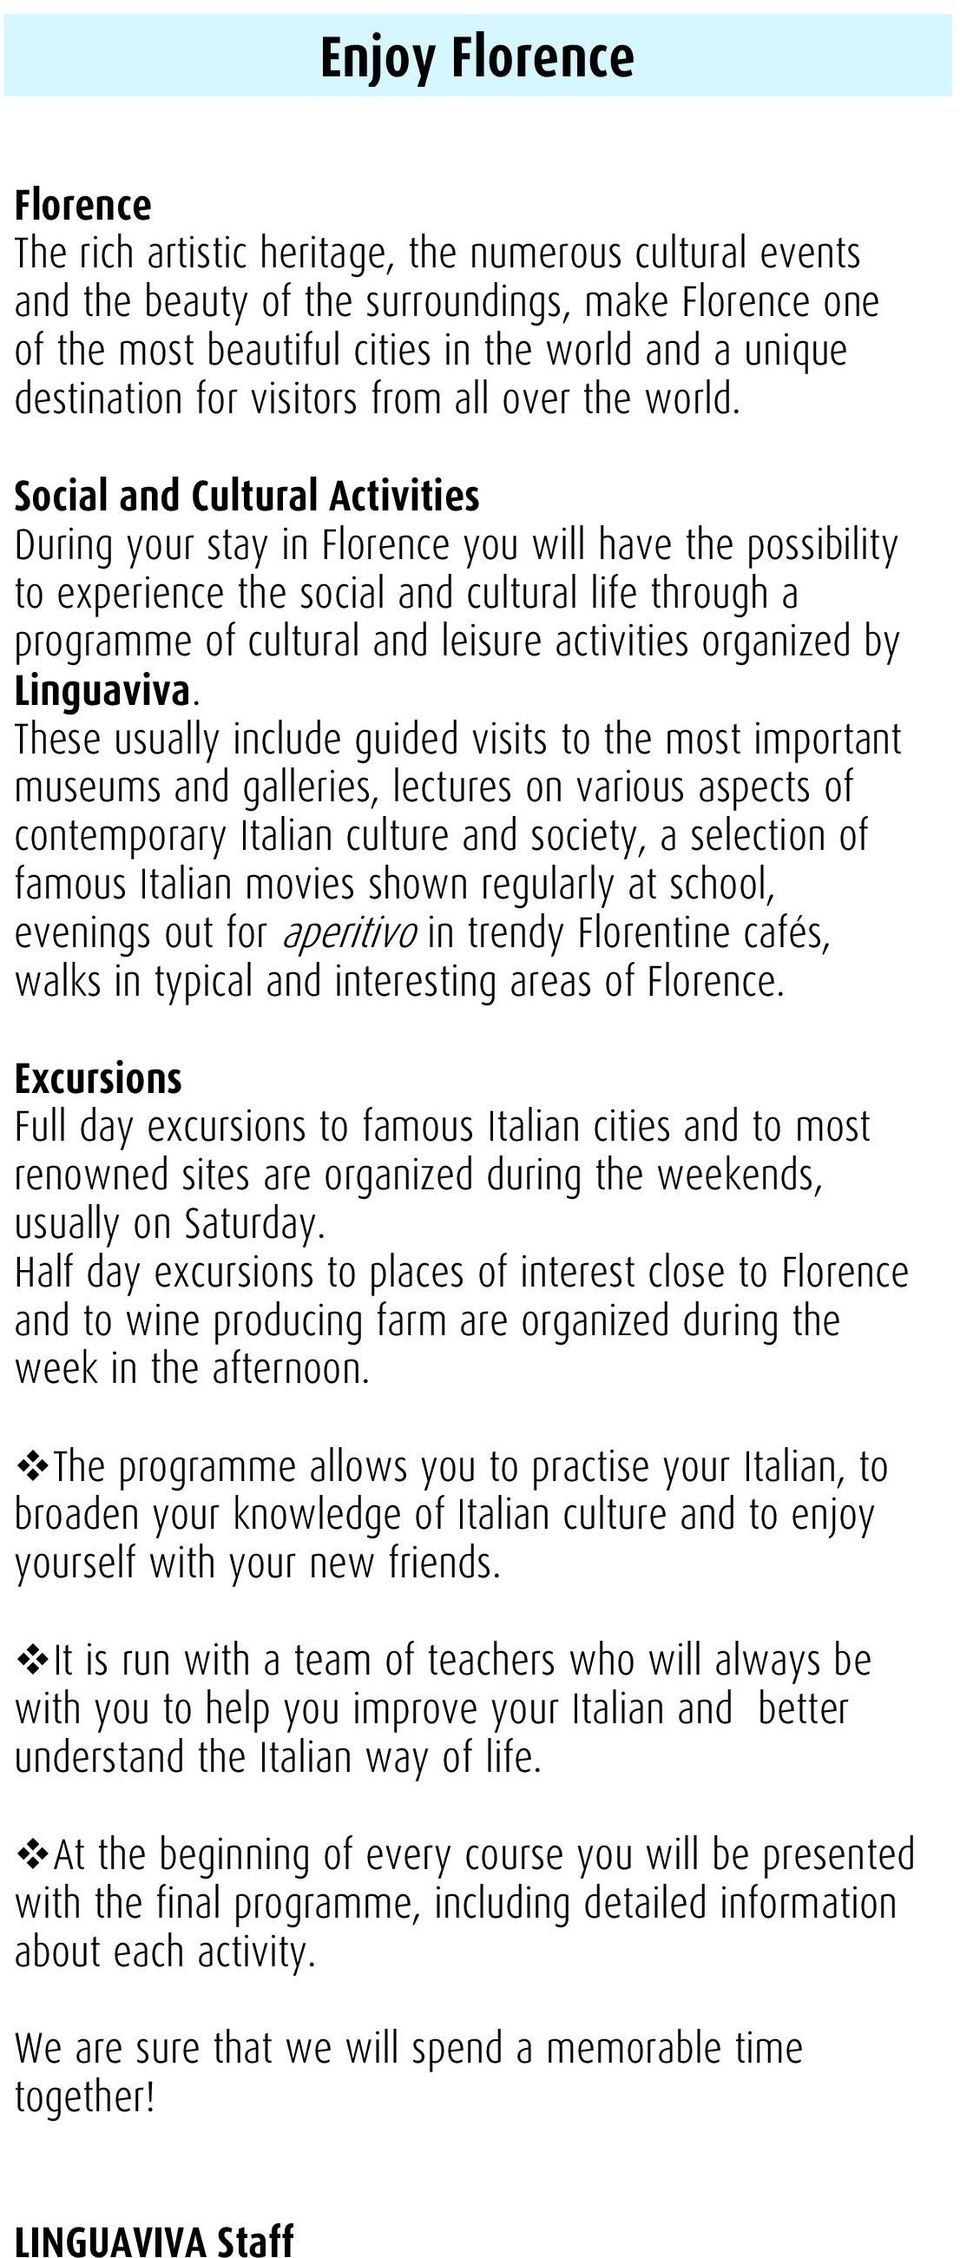 Social and Cultural Activities During your stay in Florence you will have the possibility to experience the social and cultural life through a programme of cultural and leisure activities organized